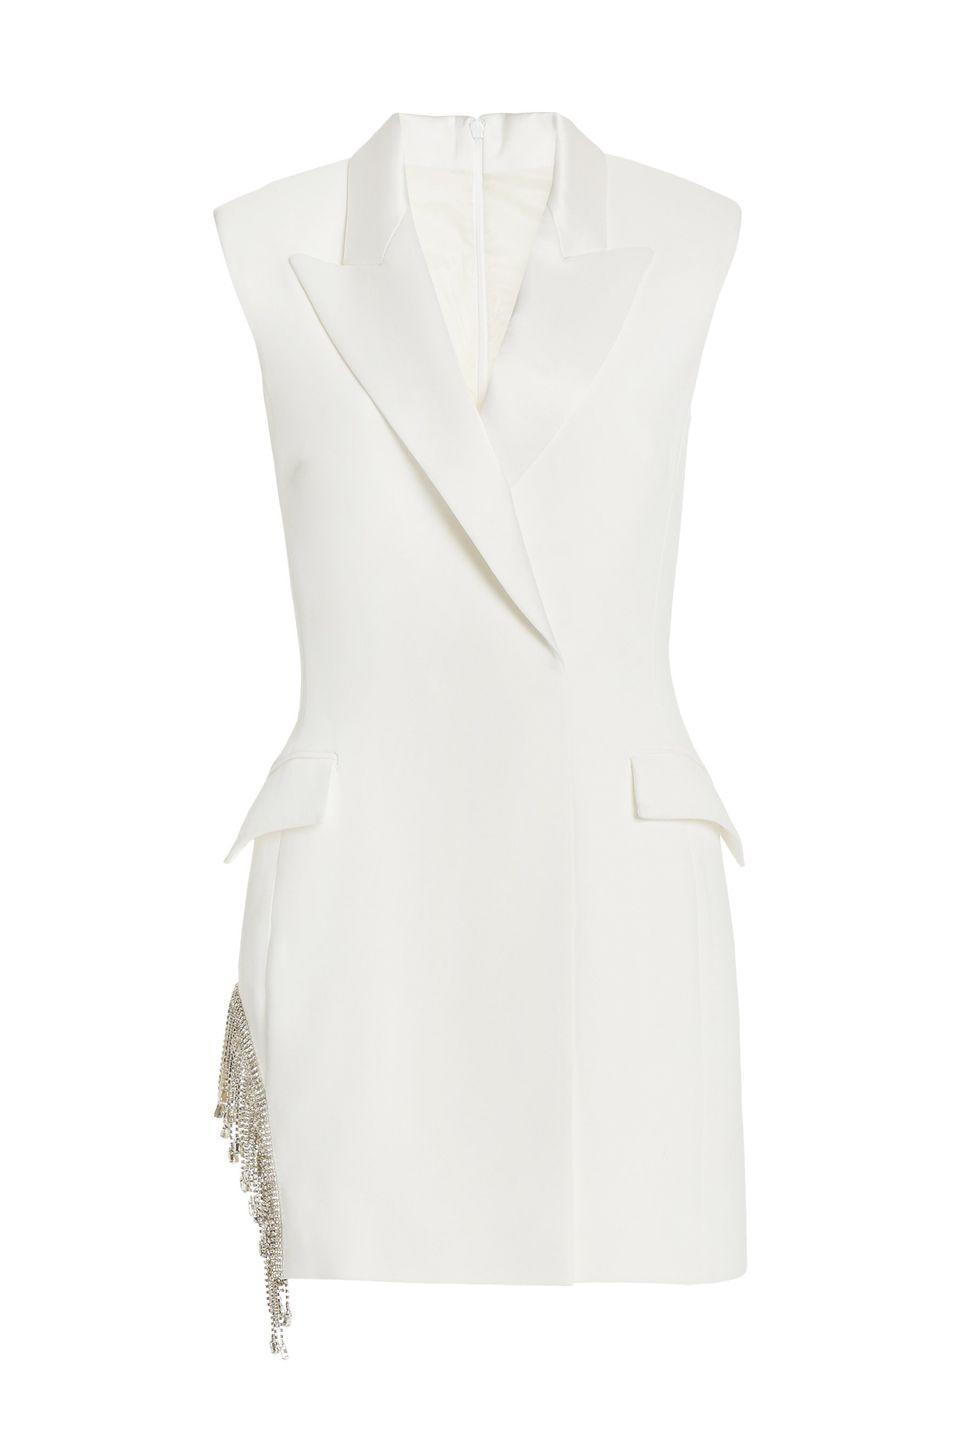 "<p>Opt for a sleeveless blazer instead of a long-sleeve for a take on a summer suit that works as a mini on its own for the after-party after you don it with trousers.</p><p><em>Mini dress, $1,660, <a href=""https://www.modaoperandi.com/women/p/david-koma/crystal-embellished-crepe-mini-blazer-dress/452946"" rel=""nofollow noopener"" target=""_blank"" data-ylk=""slk:modaoperandi.com"" class=""link rapid-noclick-resp"">modaoperandi.com</a></em> <a class=""link rapid-noclick-resp"" href=""https://go.redirectingat.com?id=74968X1596630&url=https%3A%2F%2Fwww.modaoperandi.com%2Fwomen%2Fp%2Fdavid-koma%2Fcrystal-embellished-crepe-mini-blazer-dress%2F452946&sref=https%3A%2F%2Fwww.harpersbazaar.com%2Fwedding%2Fbridal-fashion%2Fg35154193%2Fbest-wedding-suits-for-women%2F"" rel=""nofollow noopener"" target=""_blank"" data-ylk=""slk:SHOP"">SHOP</a> </p>"